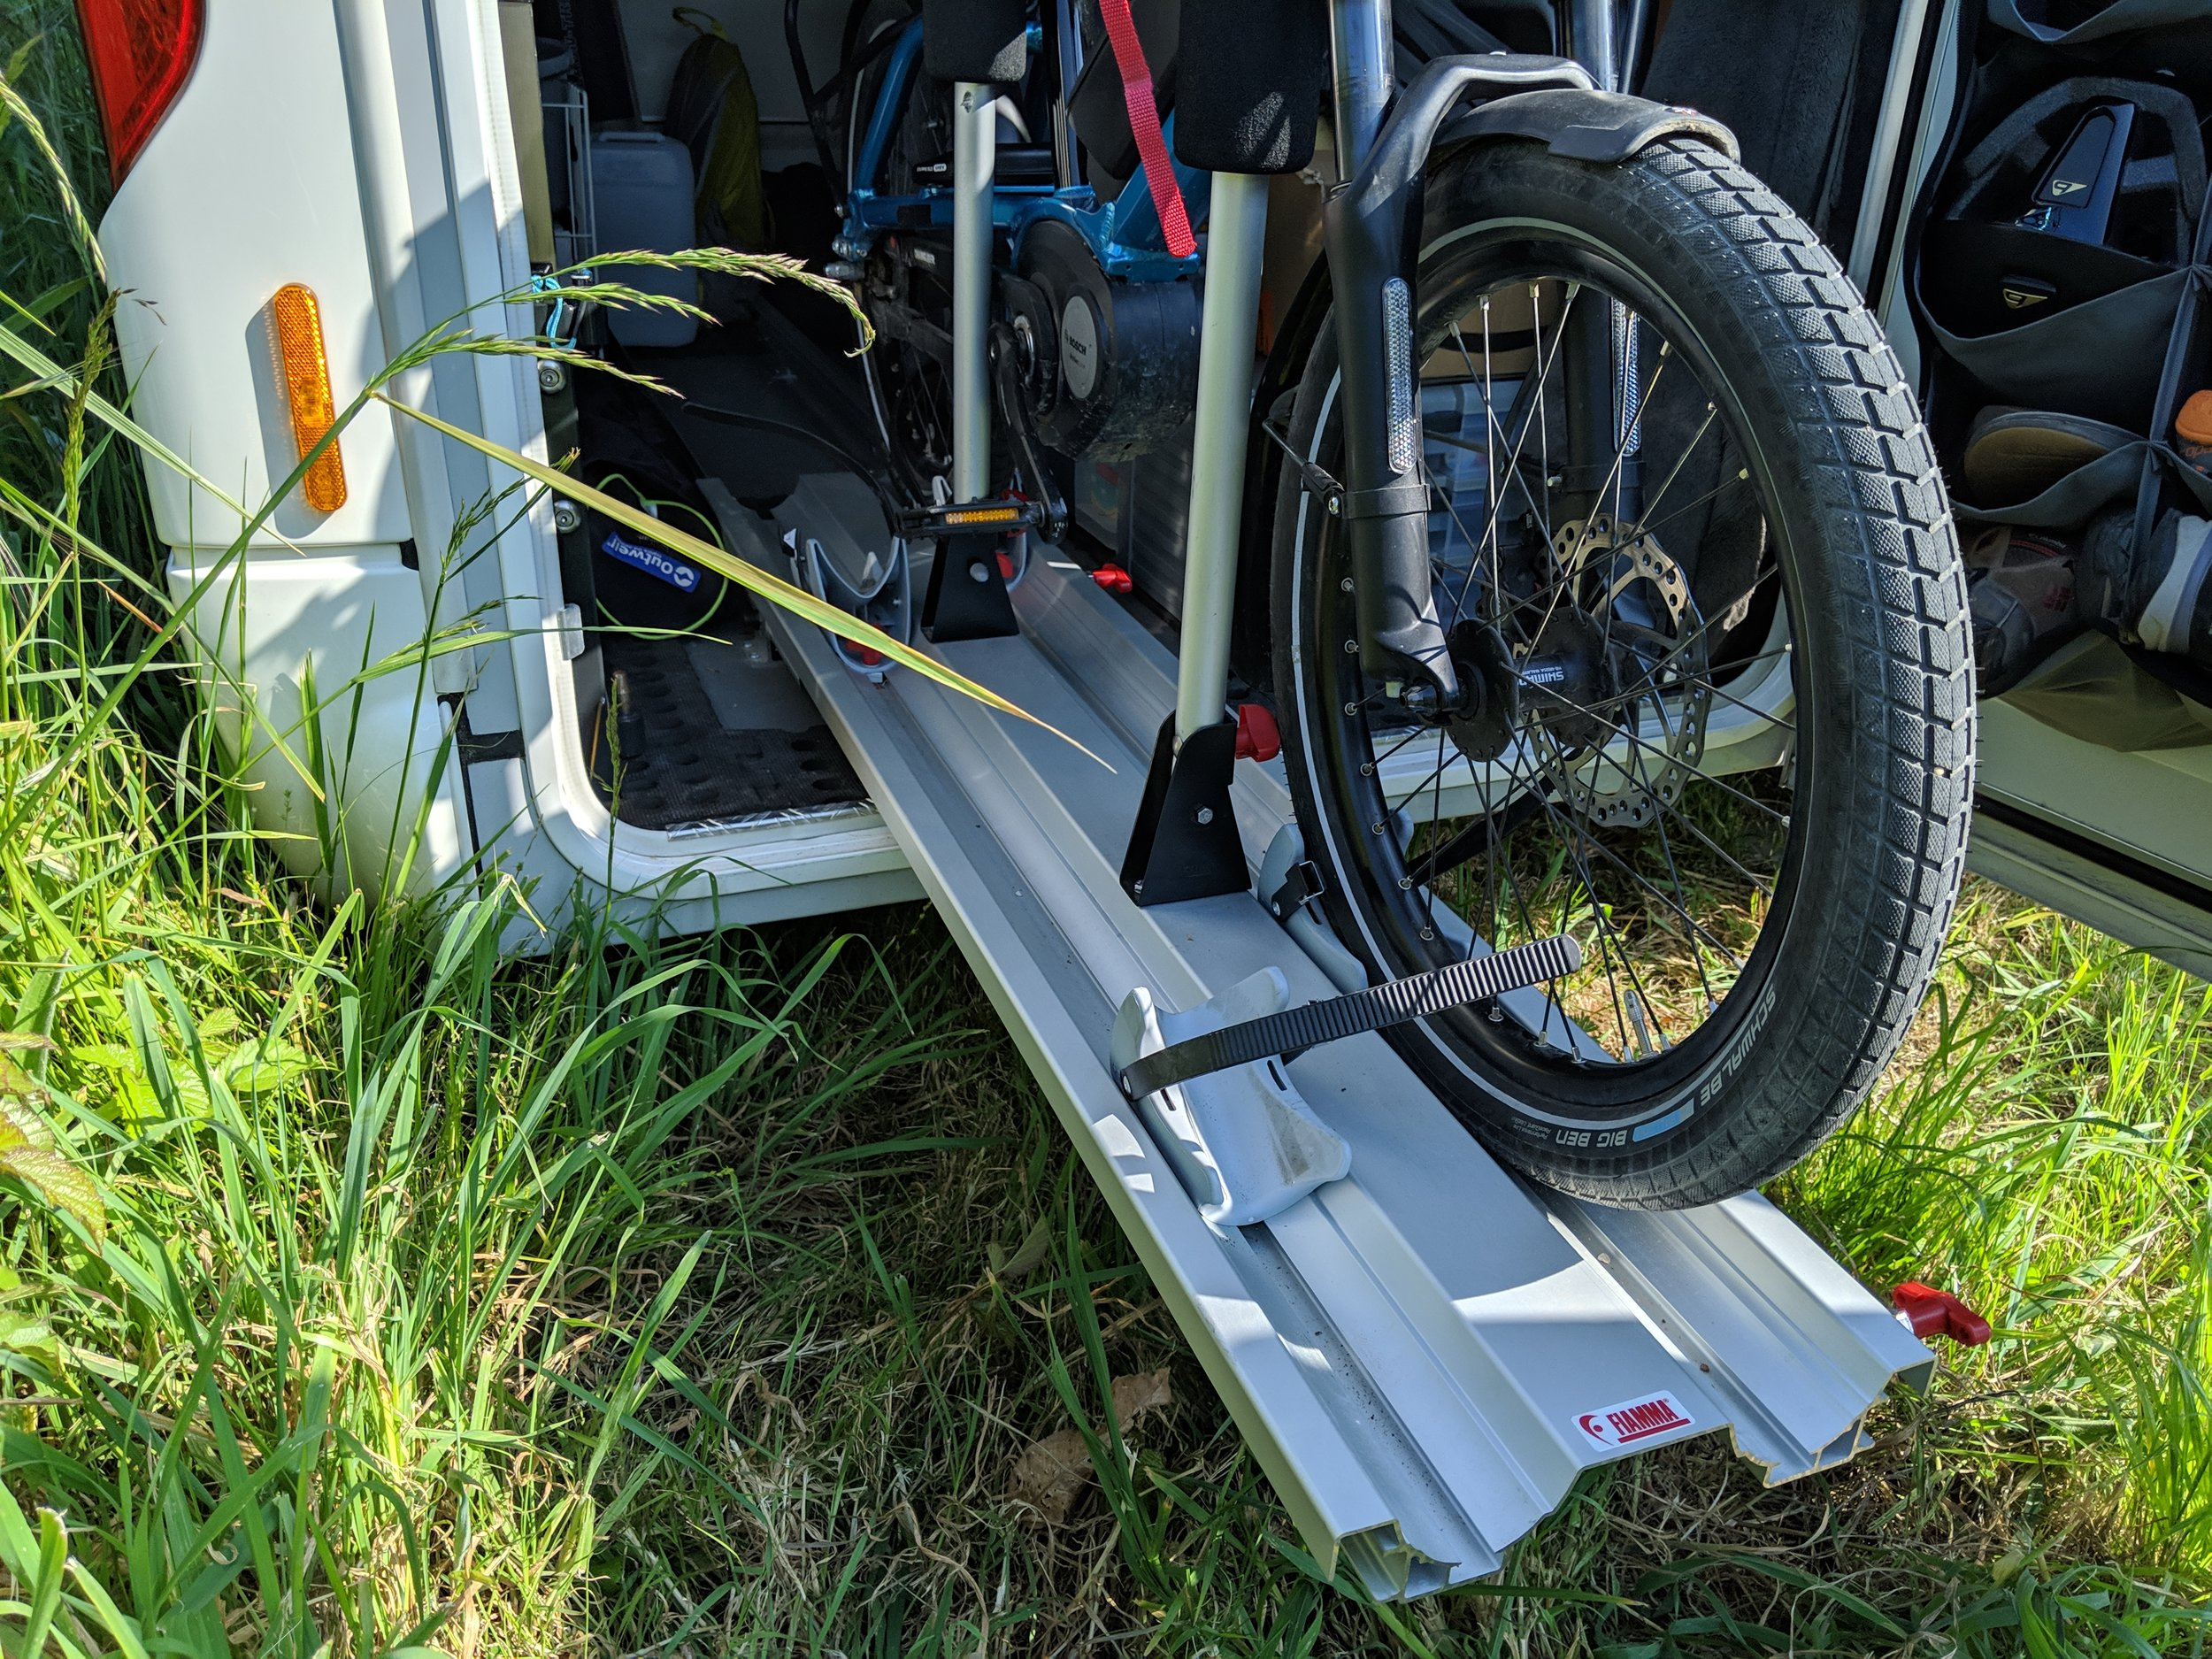 Back-saving bike rack